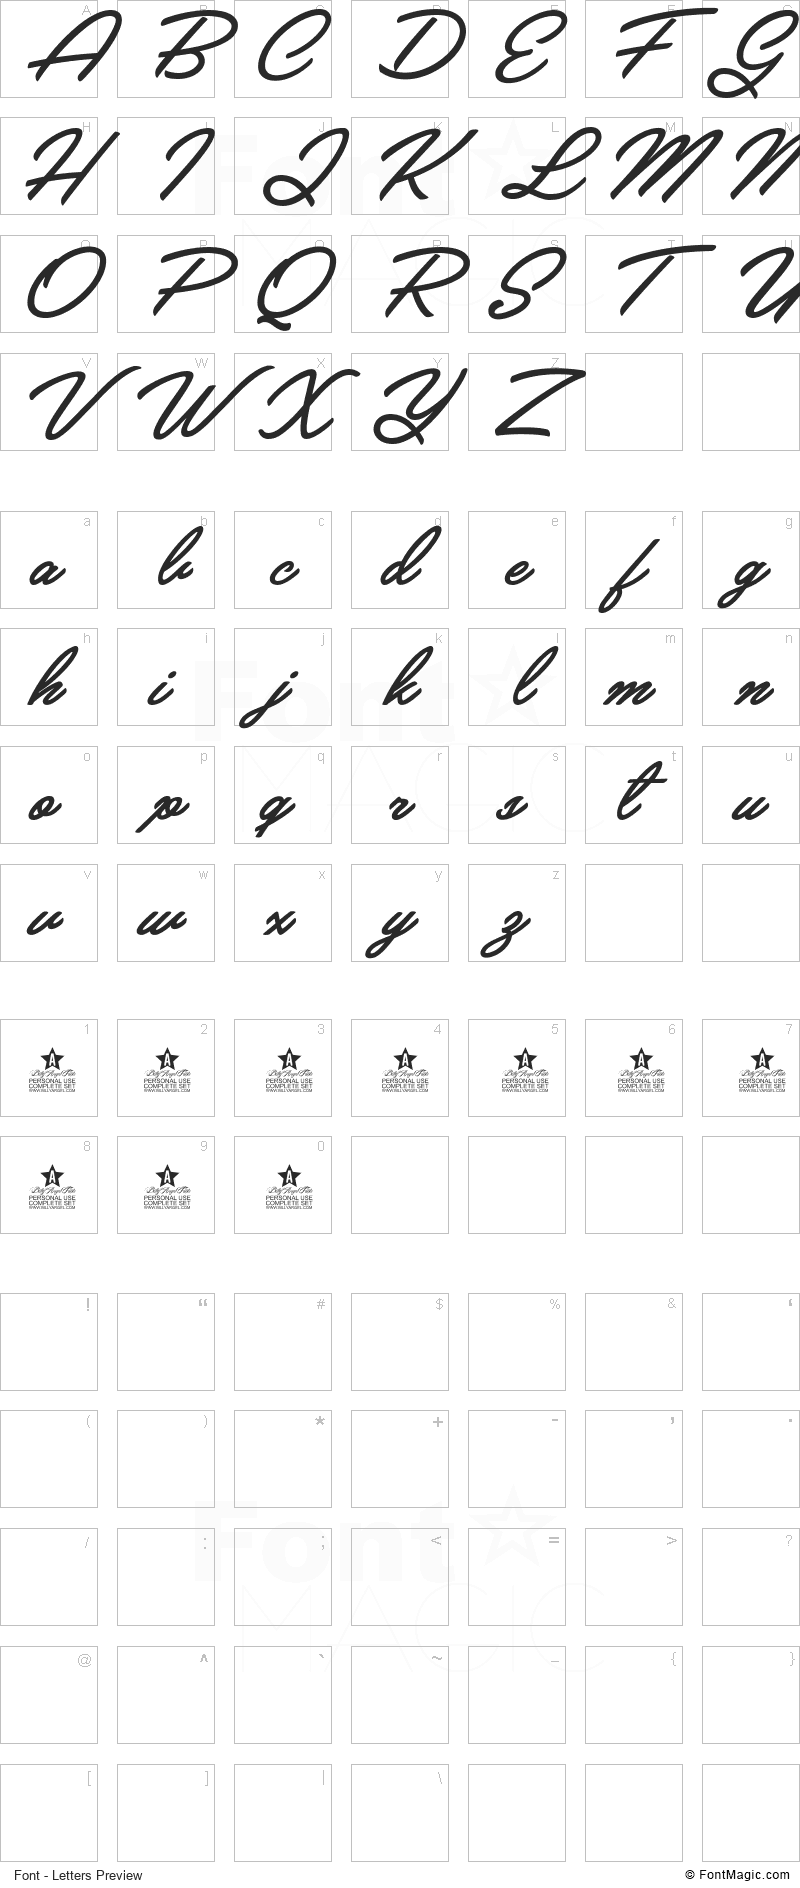 Crystal Font - All Latters Preview Chart